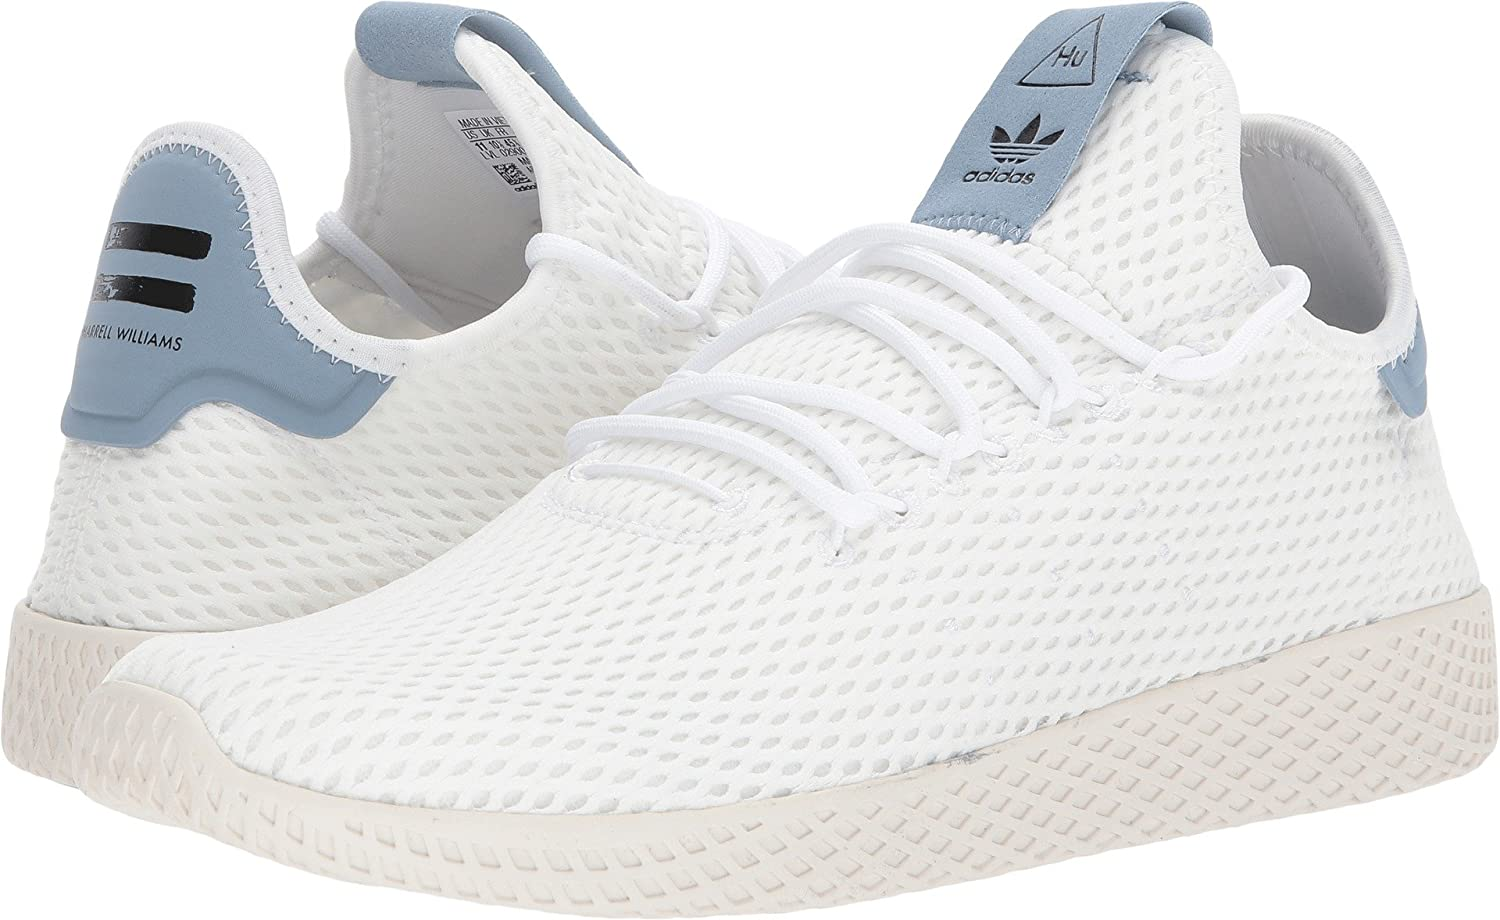 best website 8f7f3 8b3ab adidas Originals Men's Pharrell Williams Human Race White ...